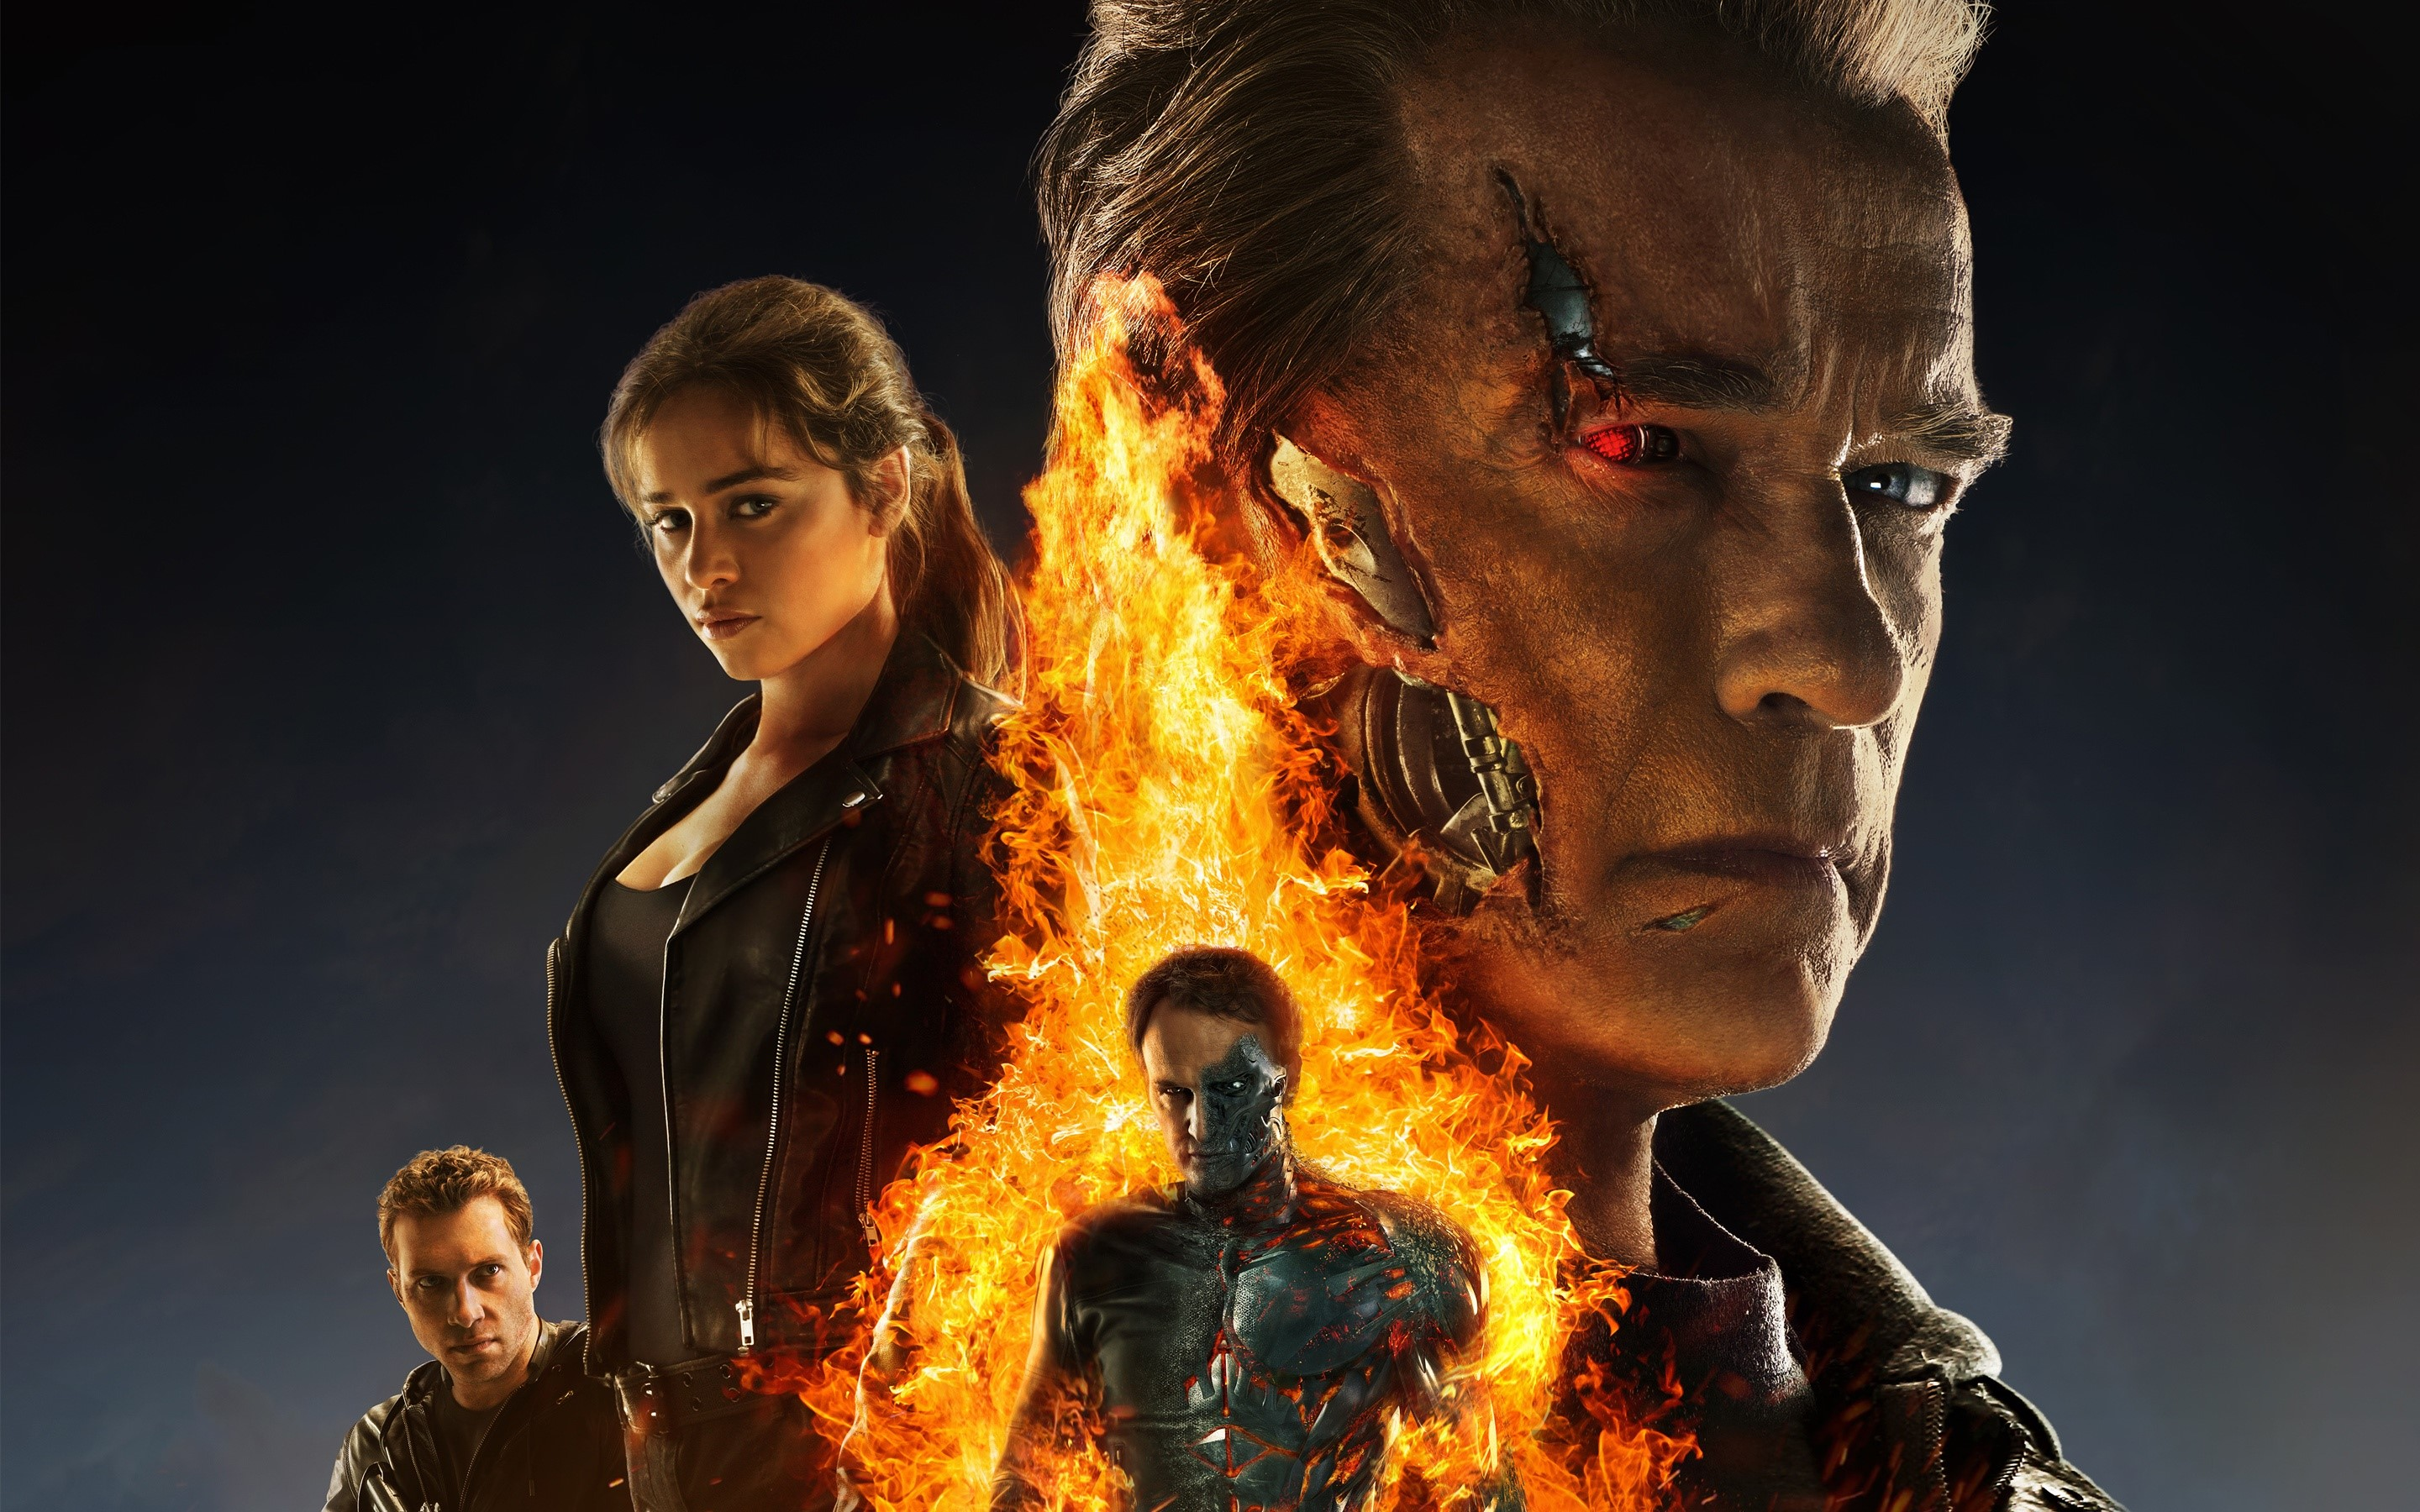 Wallpaper Poster of Terminator Genesis